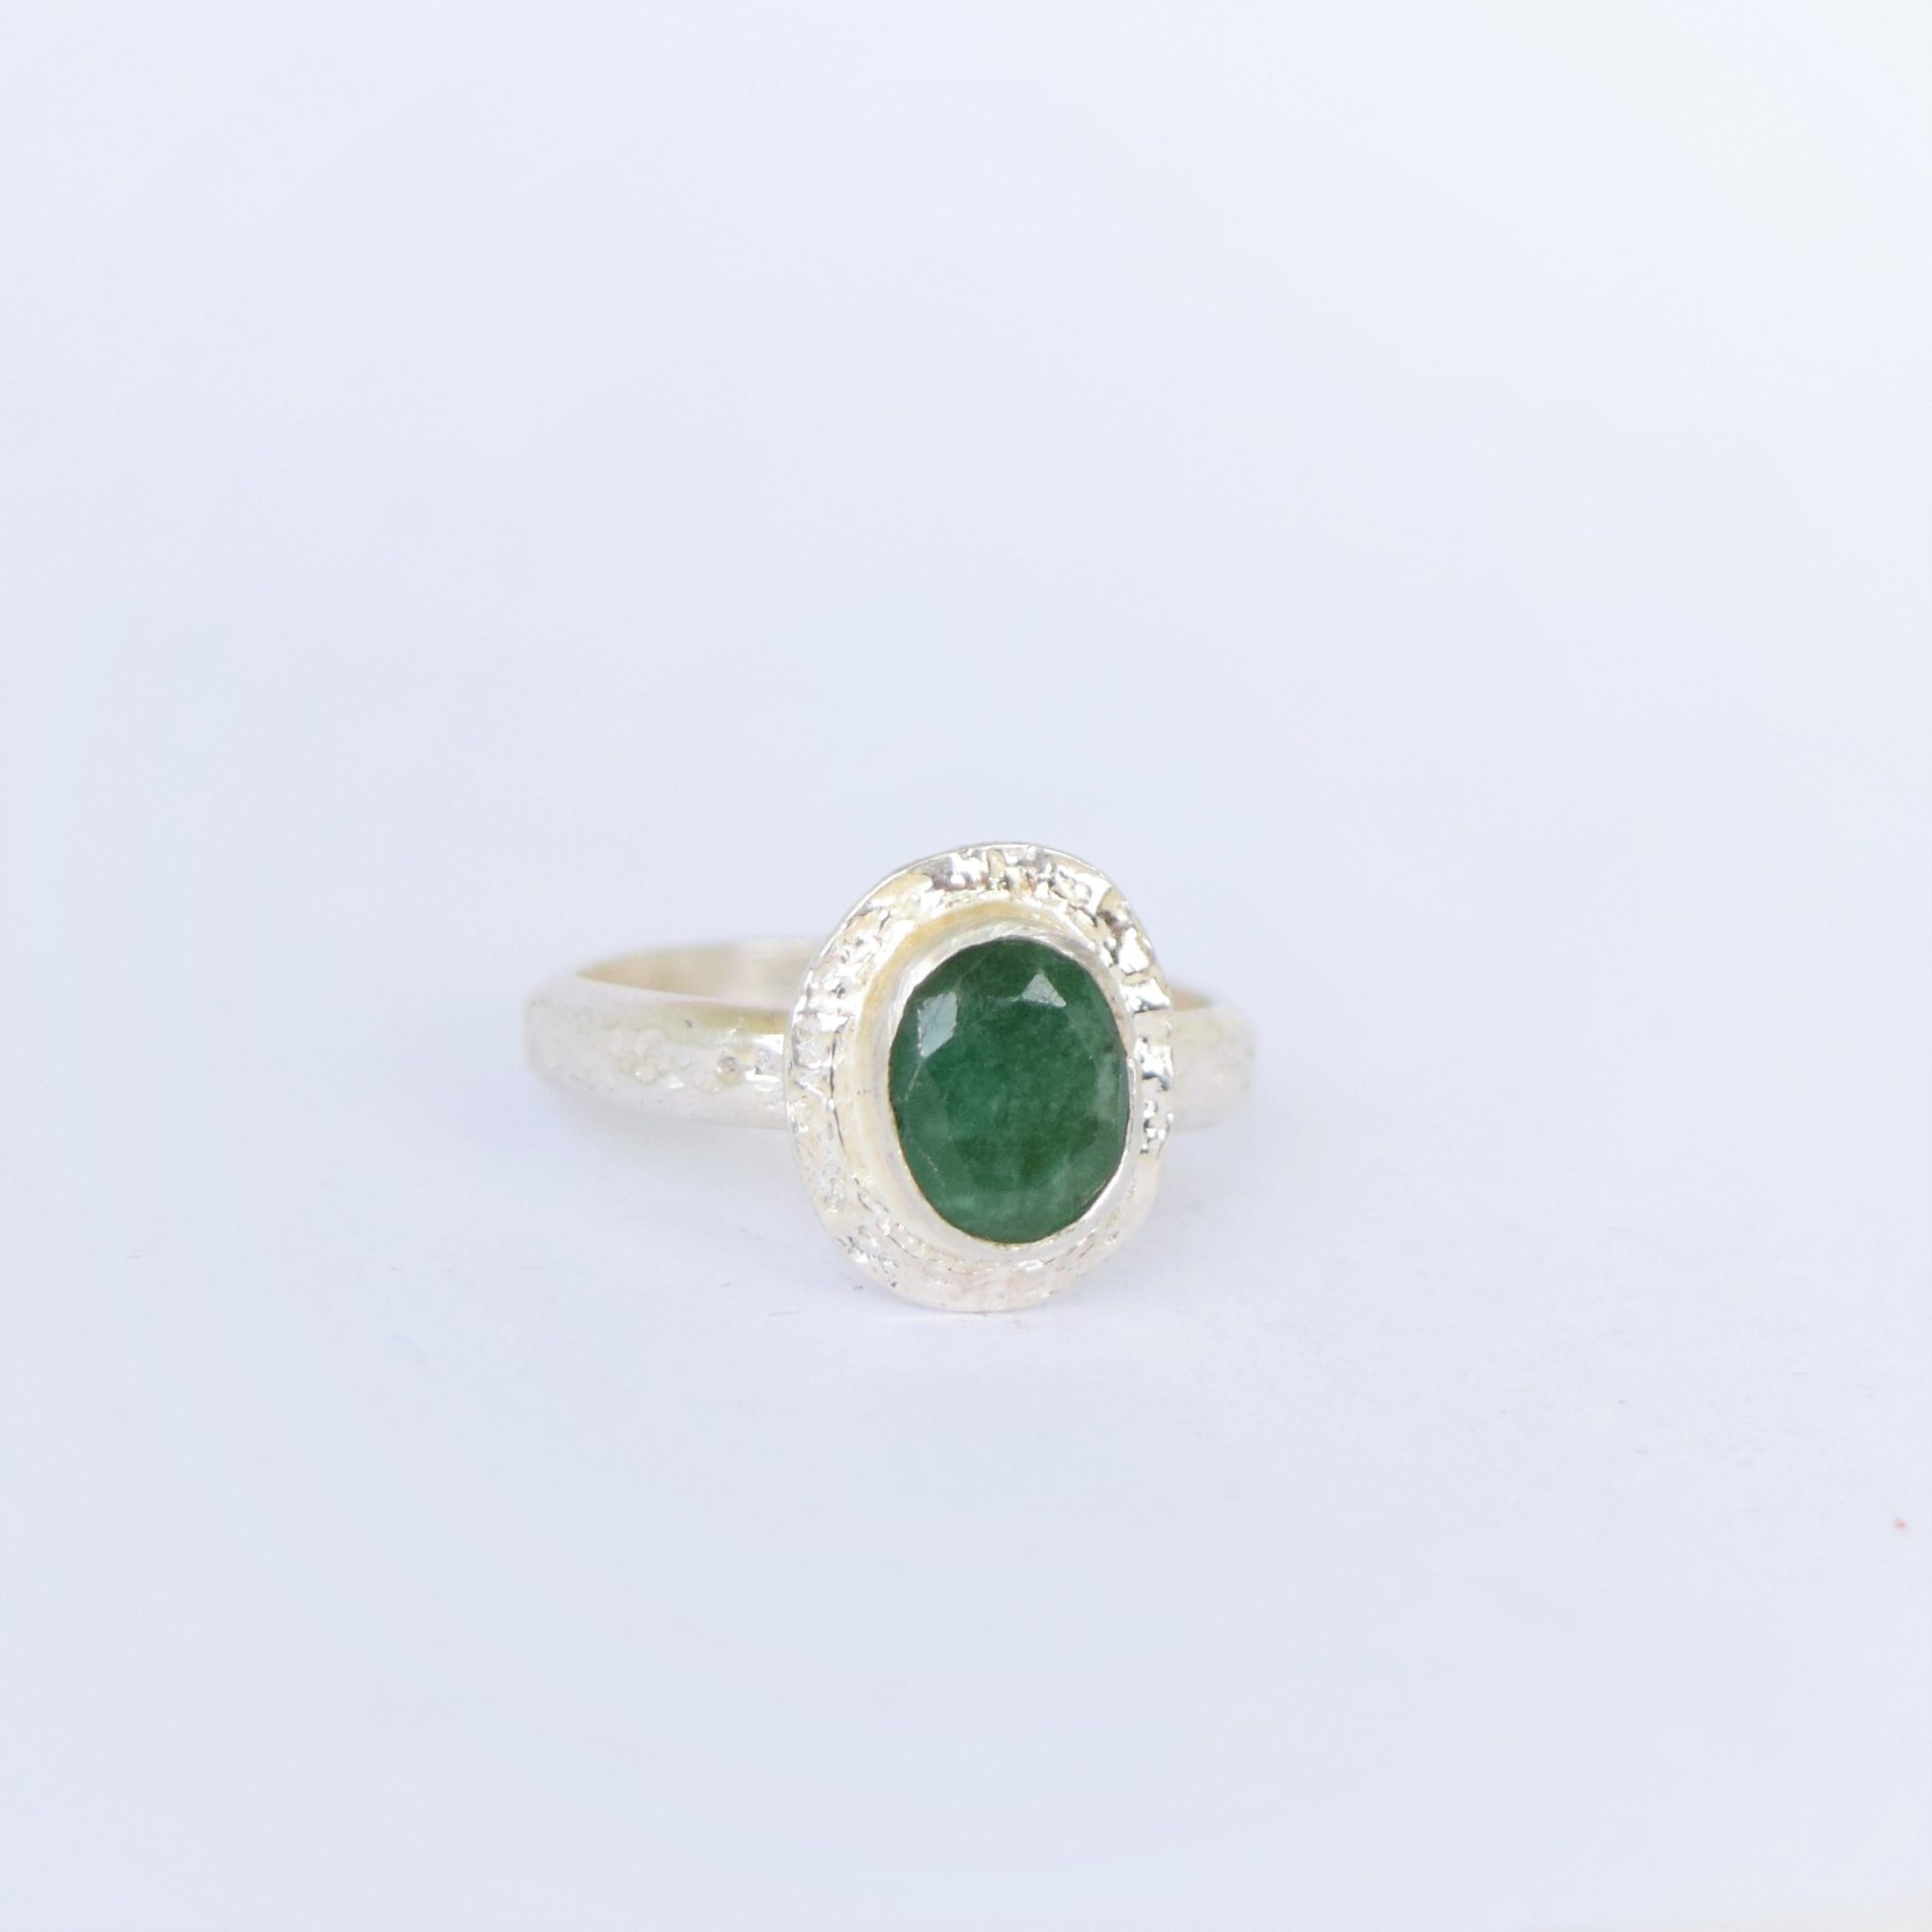 coloured diamondland emerald ring jewellery an with fancy diamond jewelry